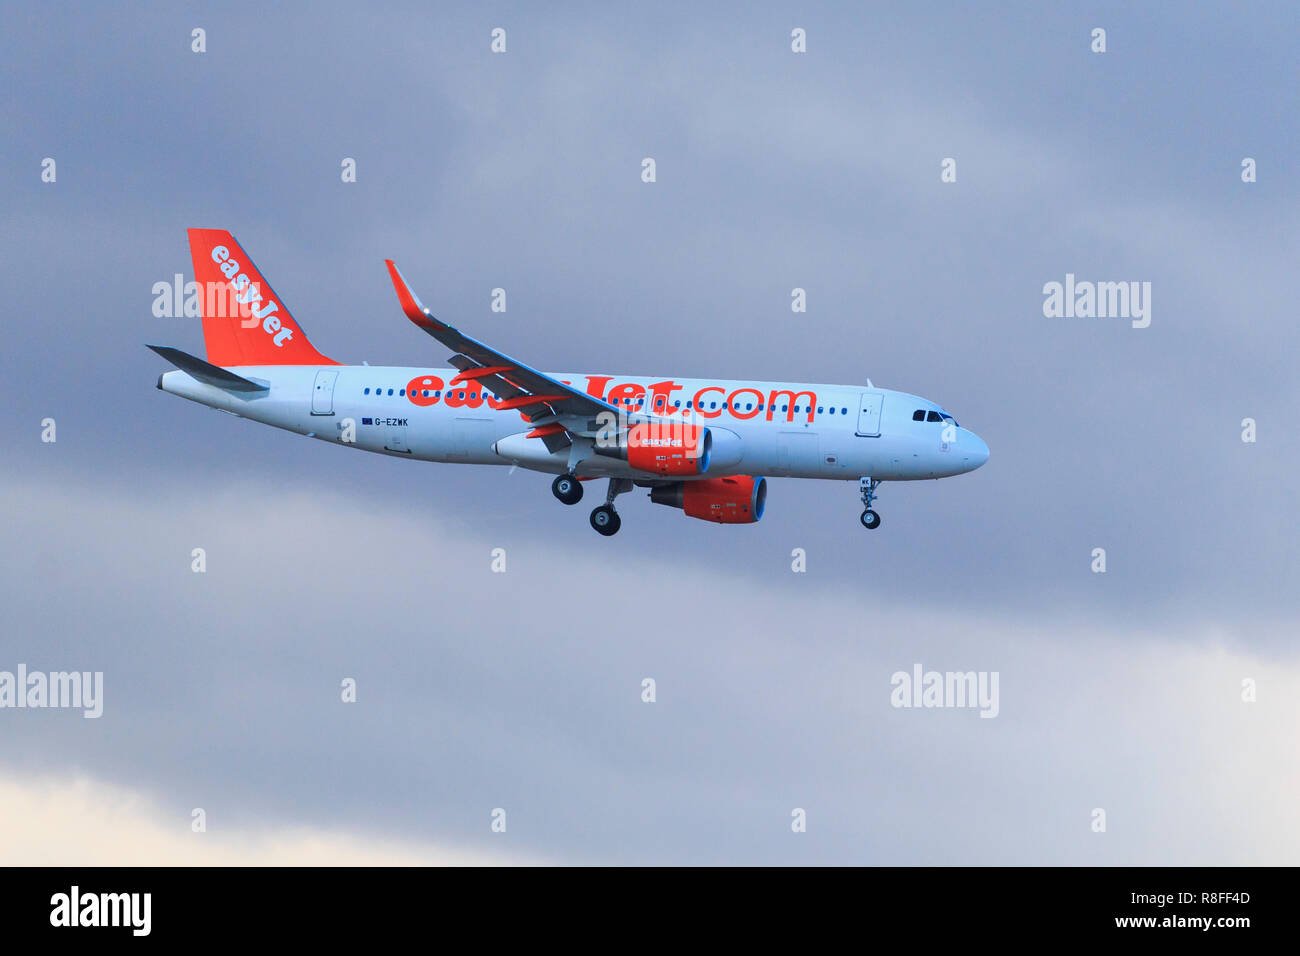 Airplane Airbus A320-214 easyJet landing in Tenerife aiport - Stock Image